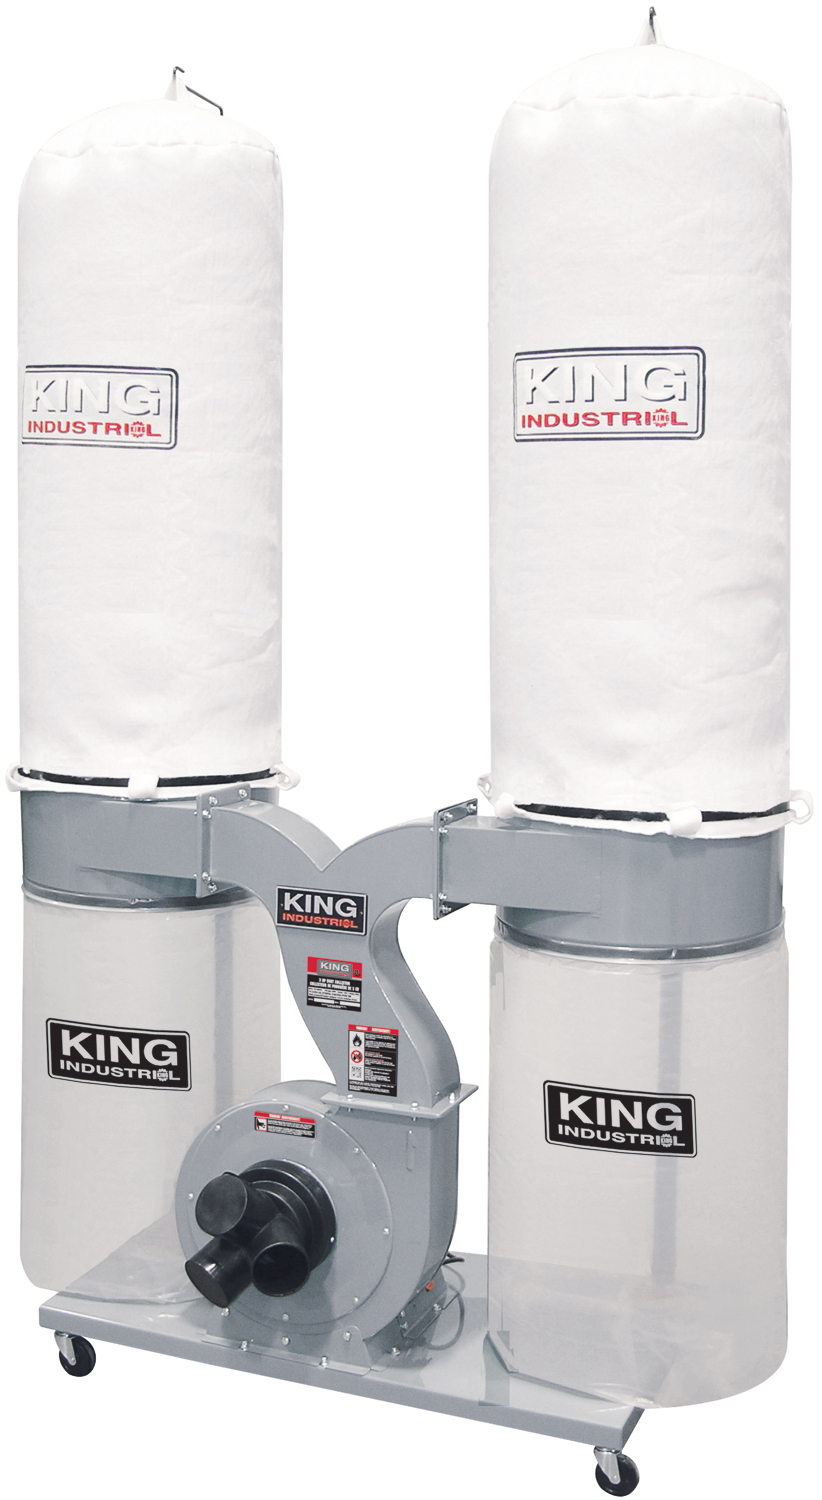 King Industrial KC-4045C Dust Collector, 3 HP, 220V, 2280CFM